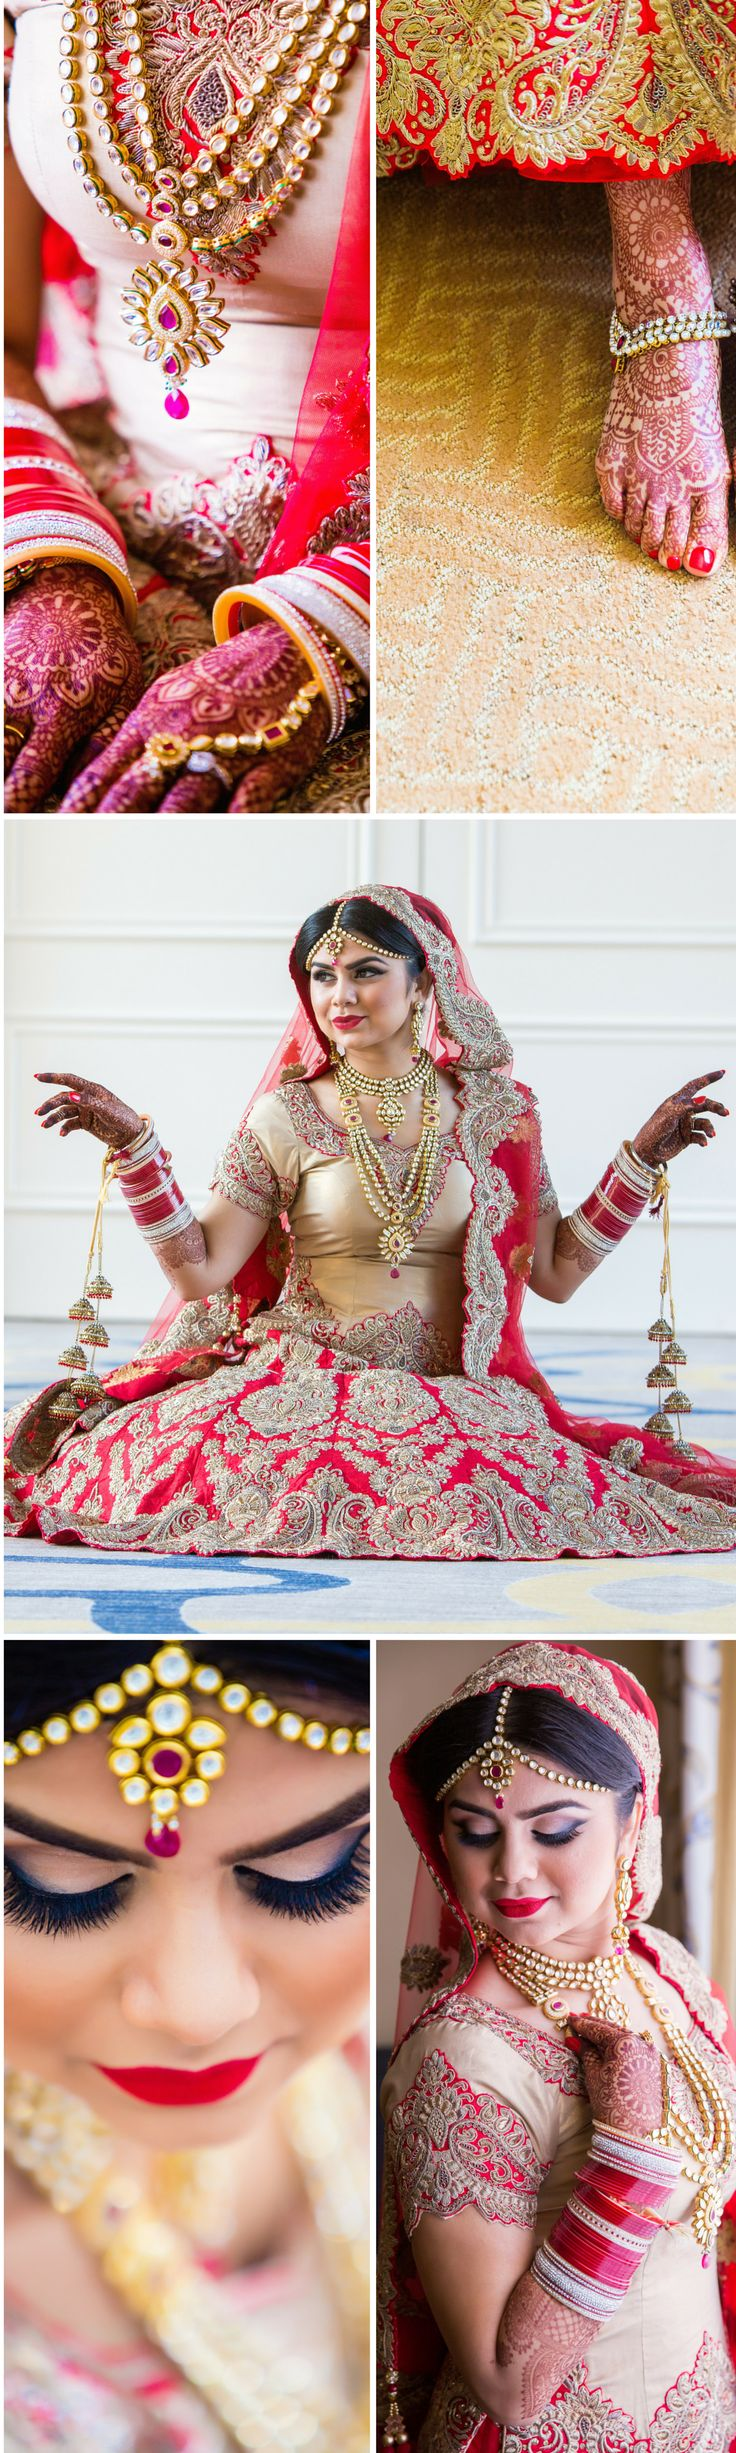 Indian wedding bridal look -  a sikh bride's jewelry (bangles, hand, necklaces, tikkas, kalirees, and payals) and wedding lengha